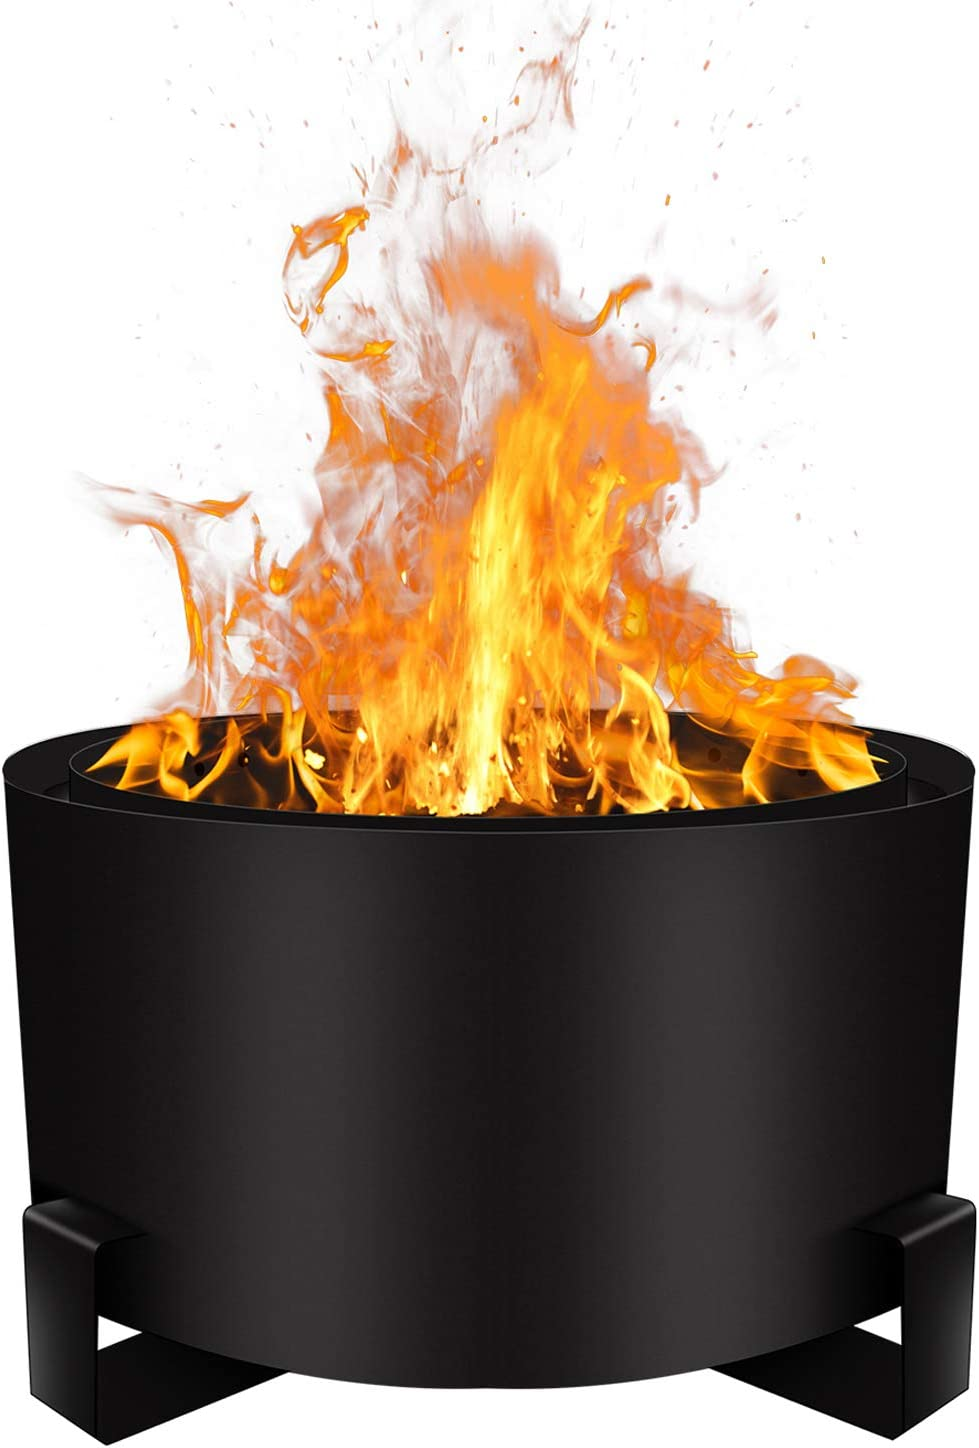 Urban Deco Patio Fire Pit Bonfire Pit Large 23.6 Inch Wood Pellet Fire Pit Outdoor Smokeless Firepit Wood Burning Low Smoke Portable Firepit with Stand and Waterproof Cover(23.6